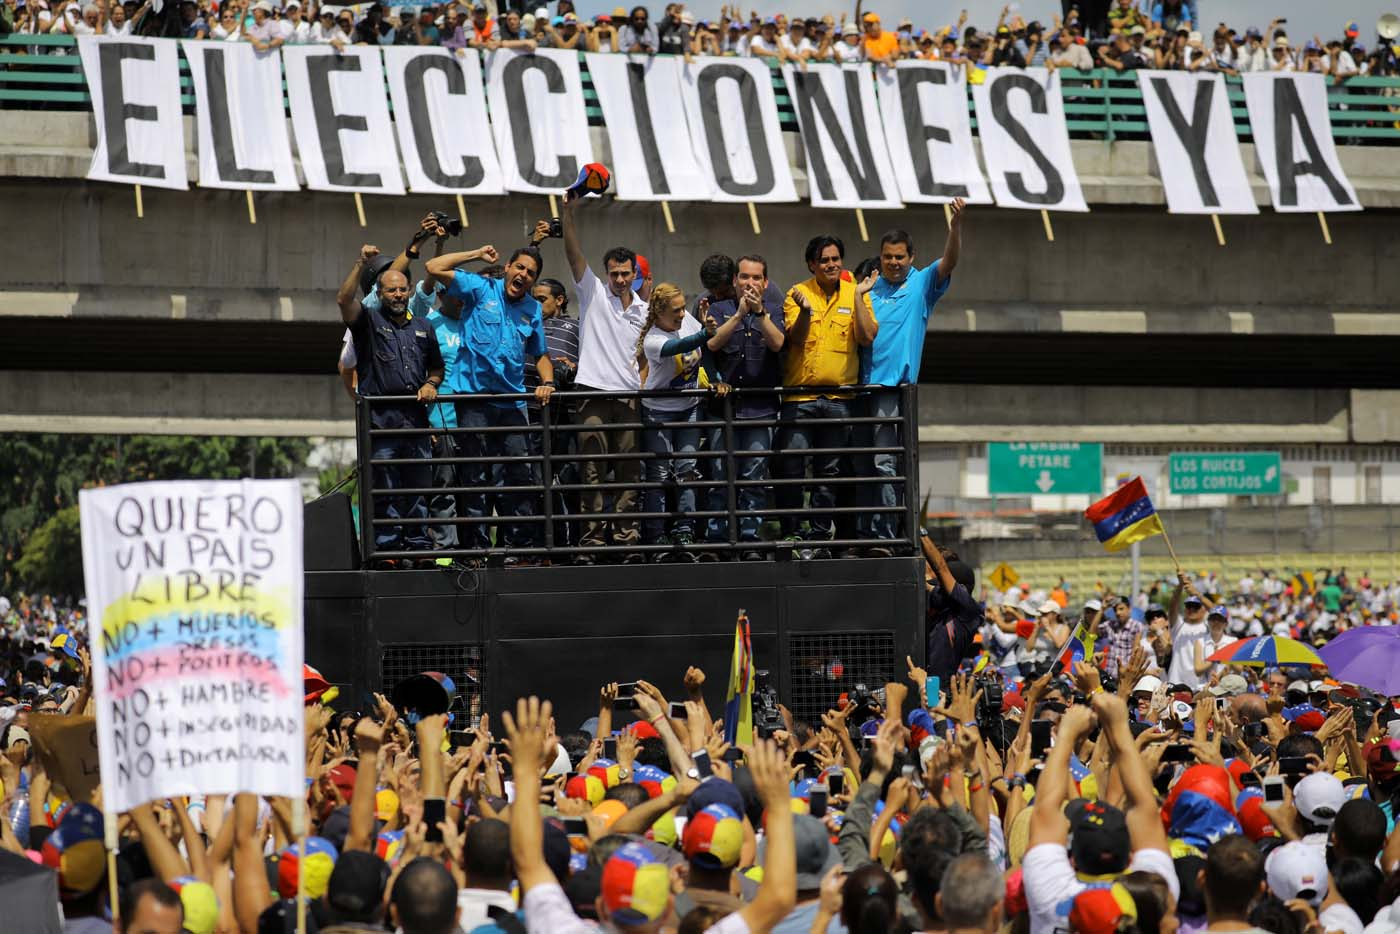 "Venezuelan opposition leader and Governor of Miranda state Henrique Capriles (3L) and Lilian Tintori (4R), wife of jailed opposition leader Leopoldo Lopez, participate in a rally against President Nicolas Maduro in front of a banner that reads ""Elections now"" in Caracas, Venezuela, May 20, 2017. REUTERS/Carlos Barria"